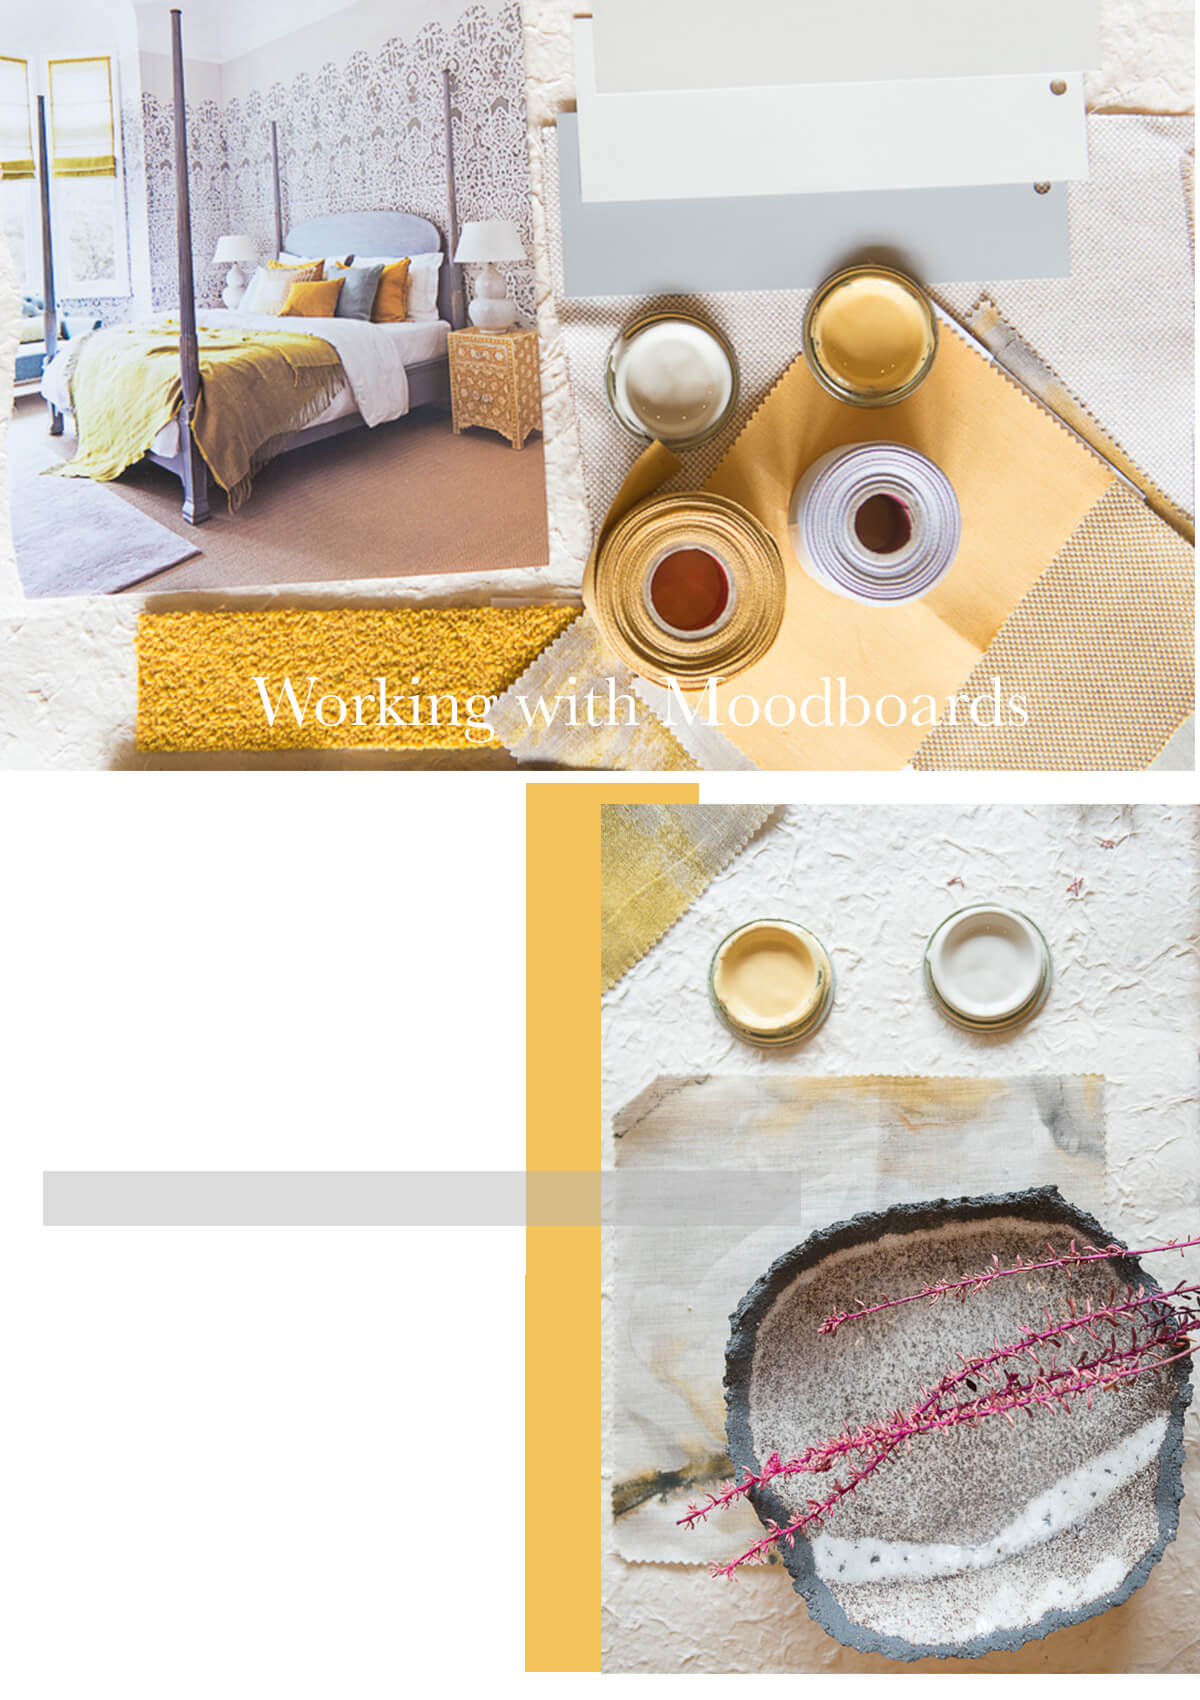 An Exercise That Can Really Help To Pin Down Your Interior Style And Favourite Colours Is Creating Your Own Moodboard In My View It S An Essential